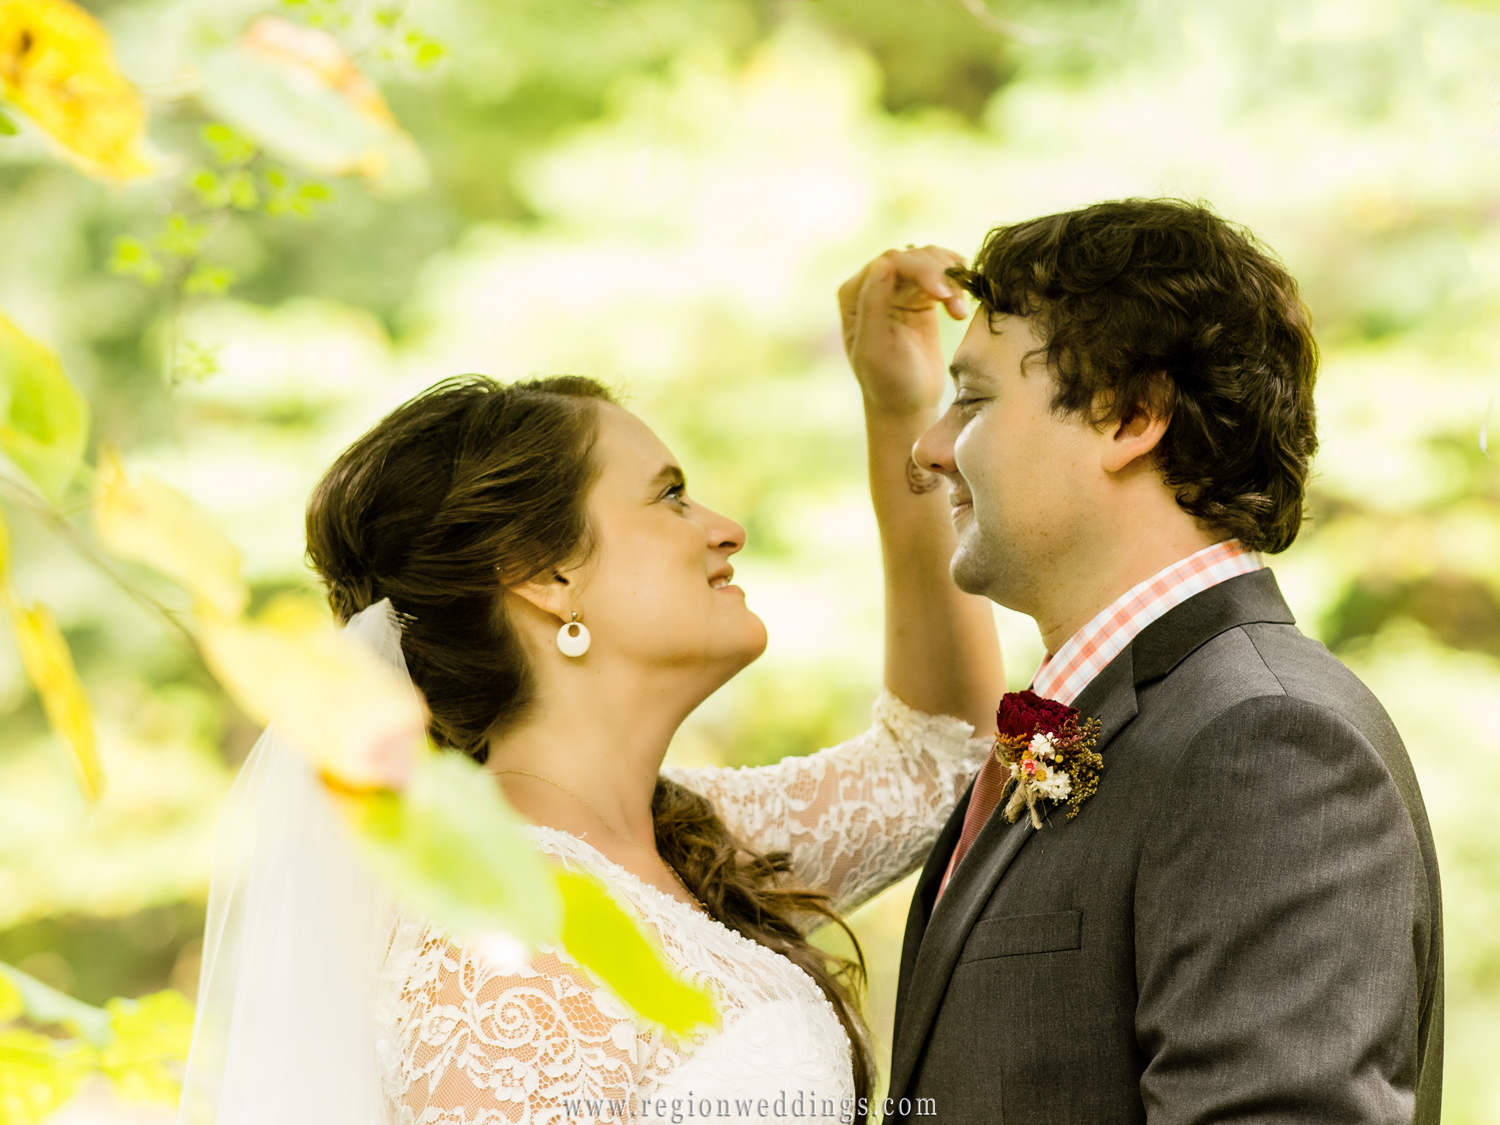 A candid photo of the bride brushing the grooms hair surrounded by wonderful greenery.